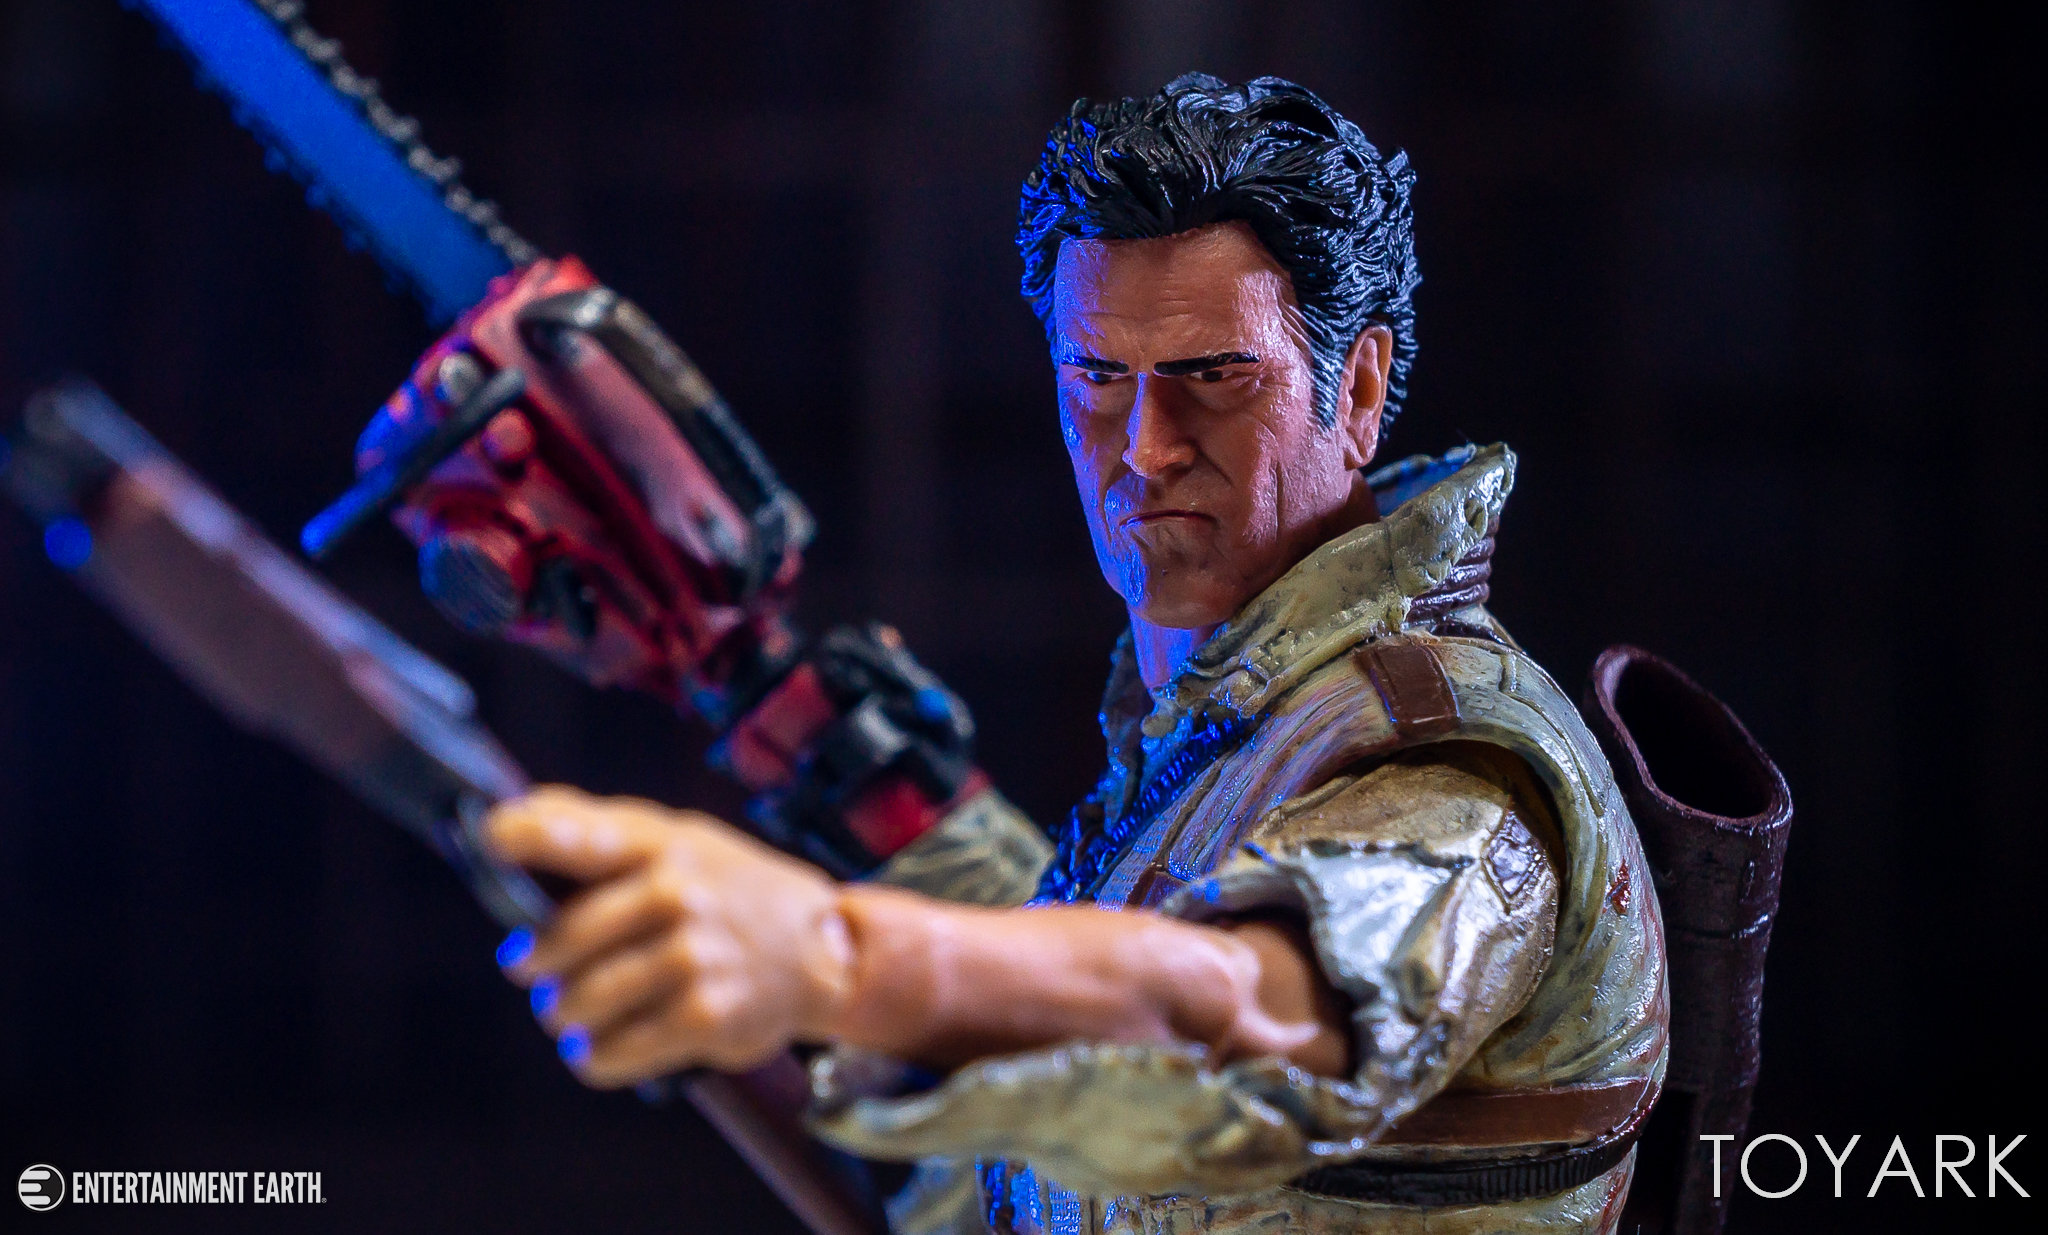 http://news.toyark.com/wp-content/uploads/sites/4/2018/04/Ash-vs-Evil-Dead-Series-2-NECA-037.jpg